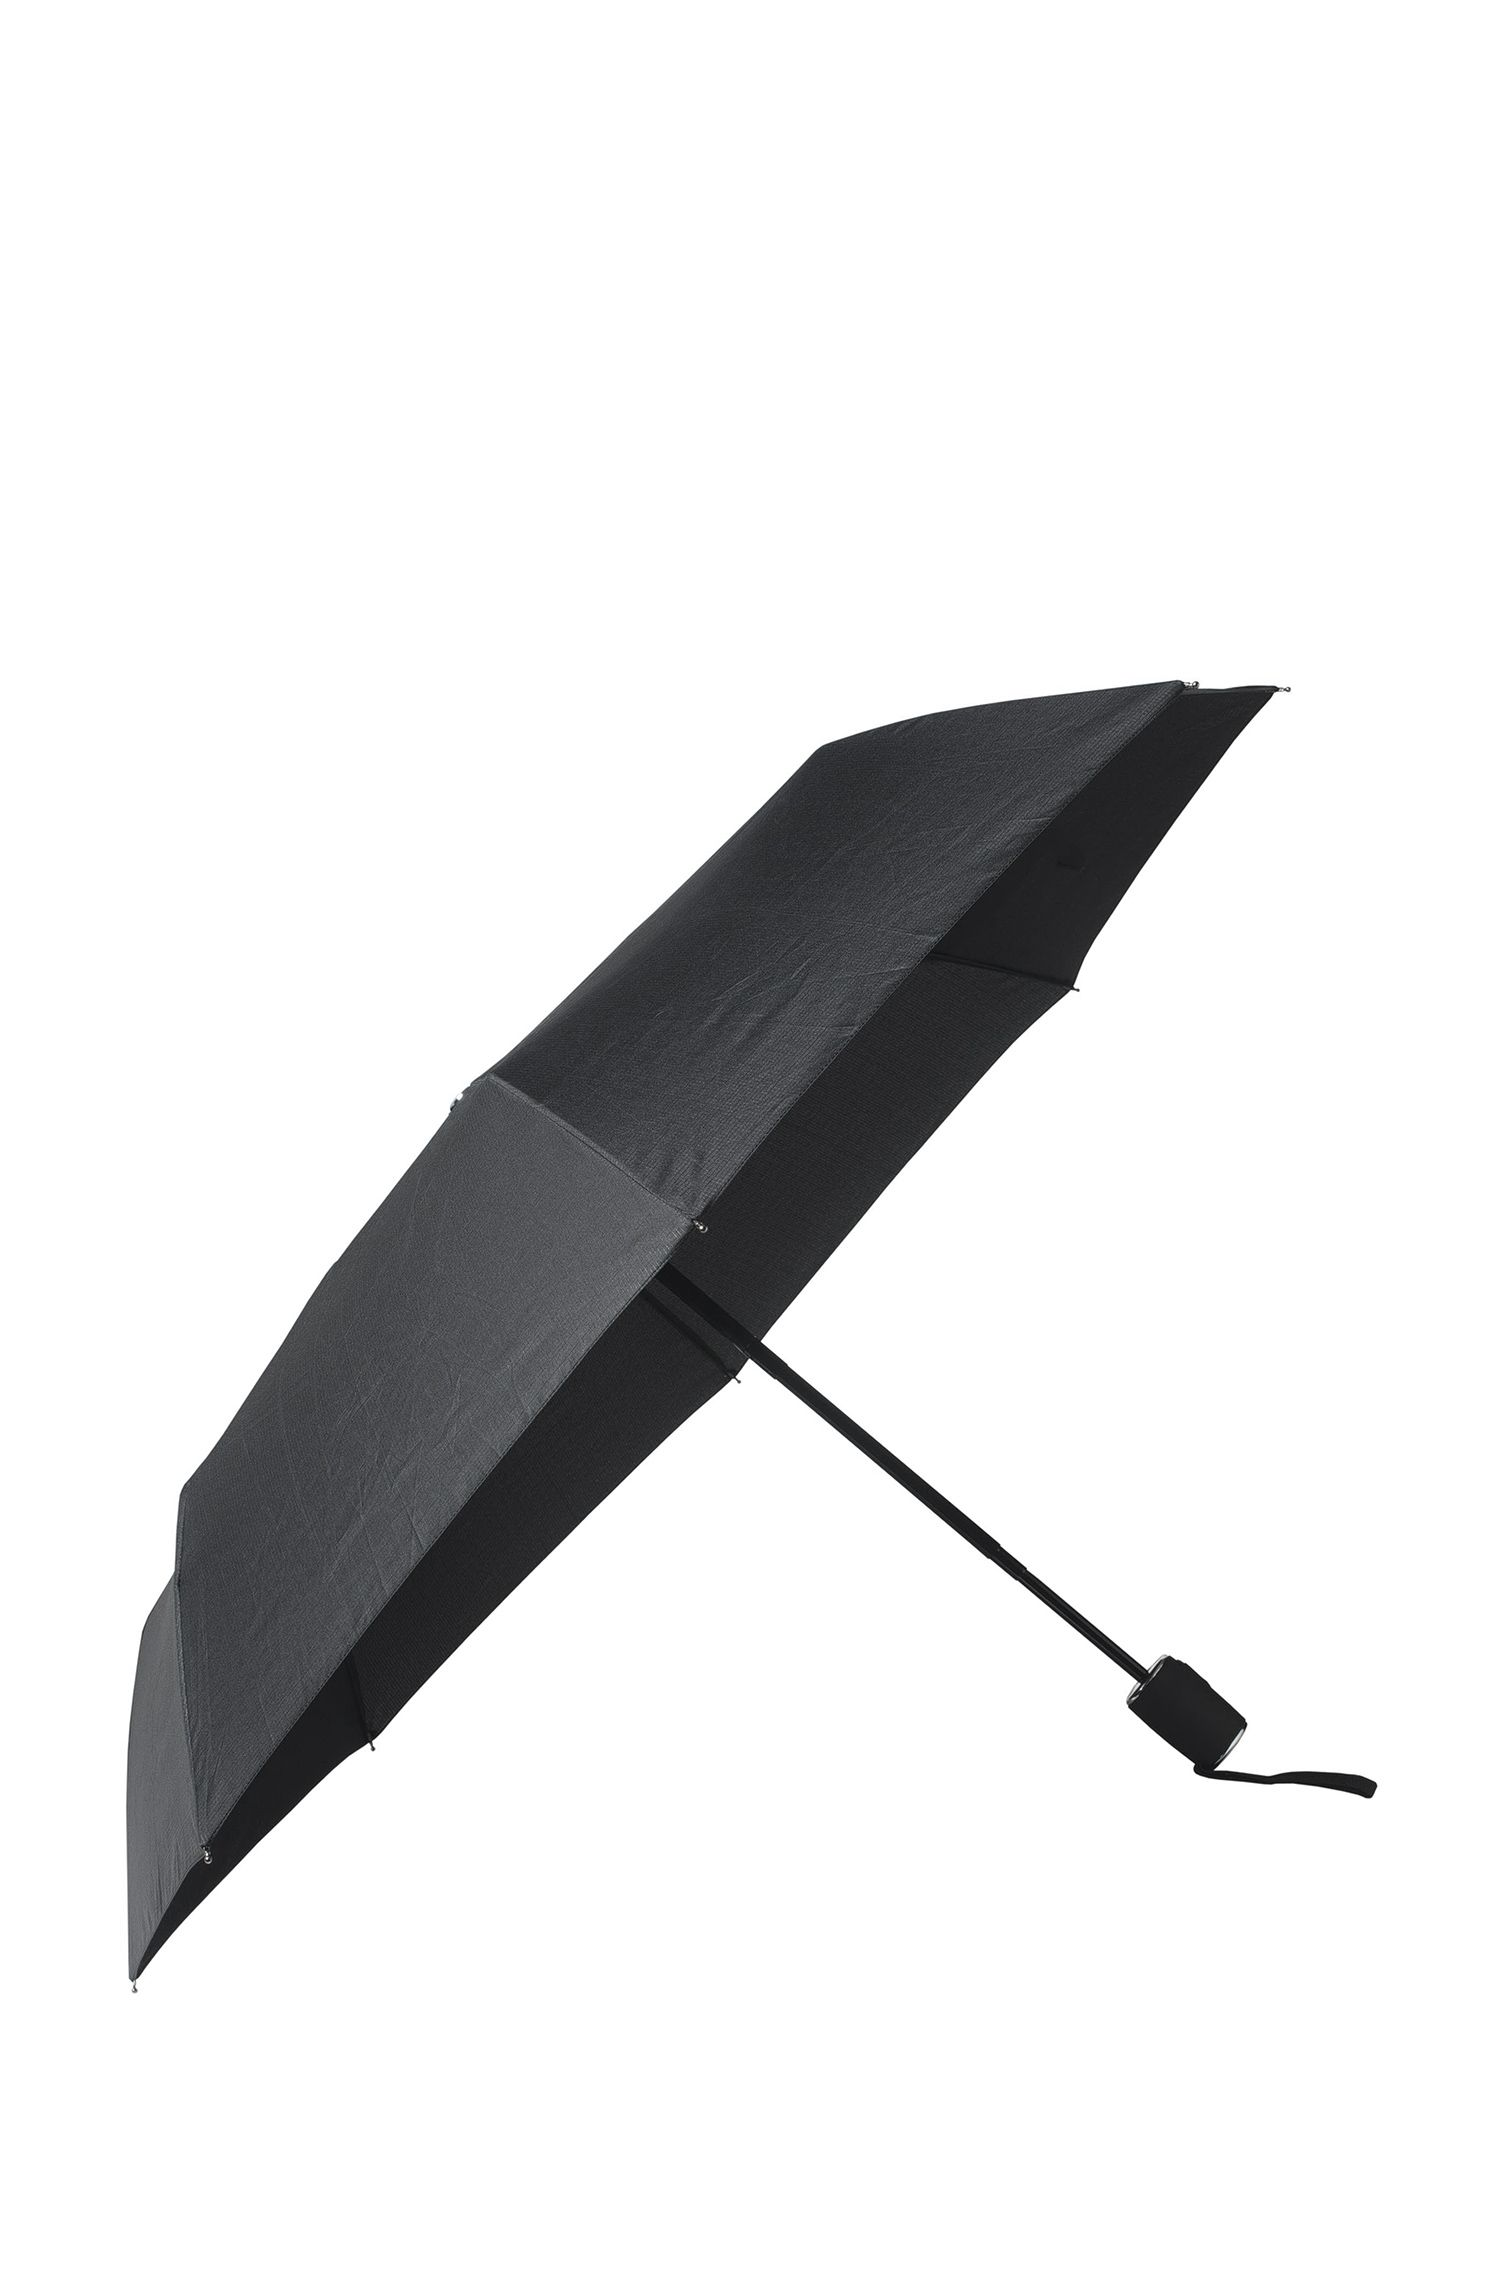 Grid-pattern pocket umbrella with automatic opening